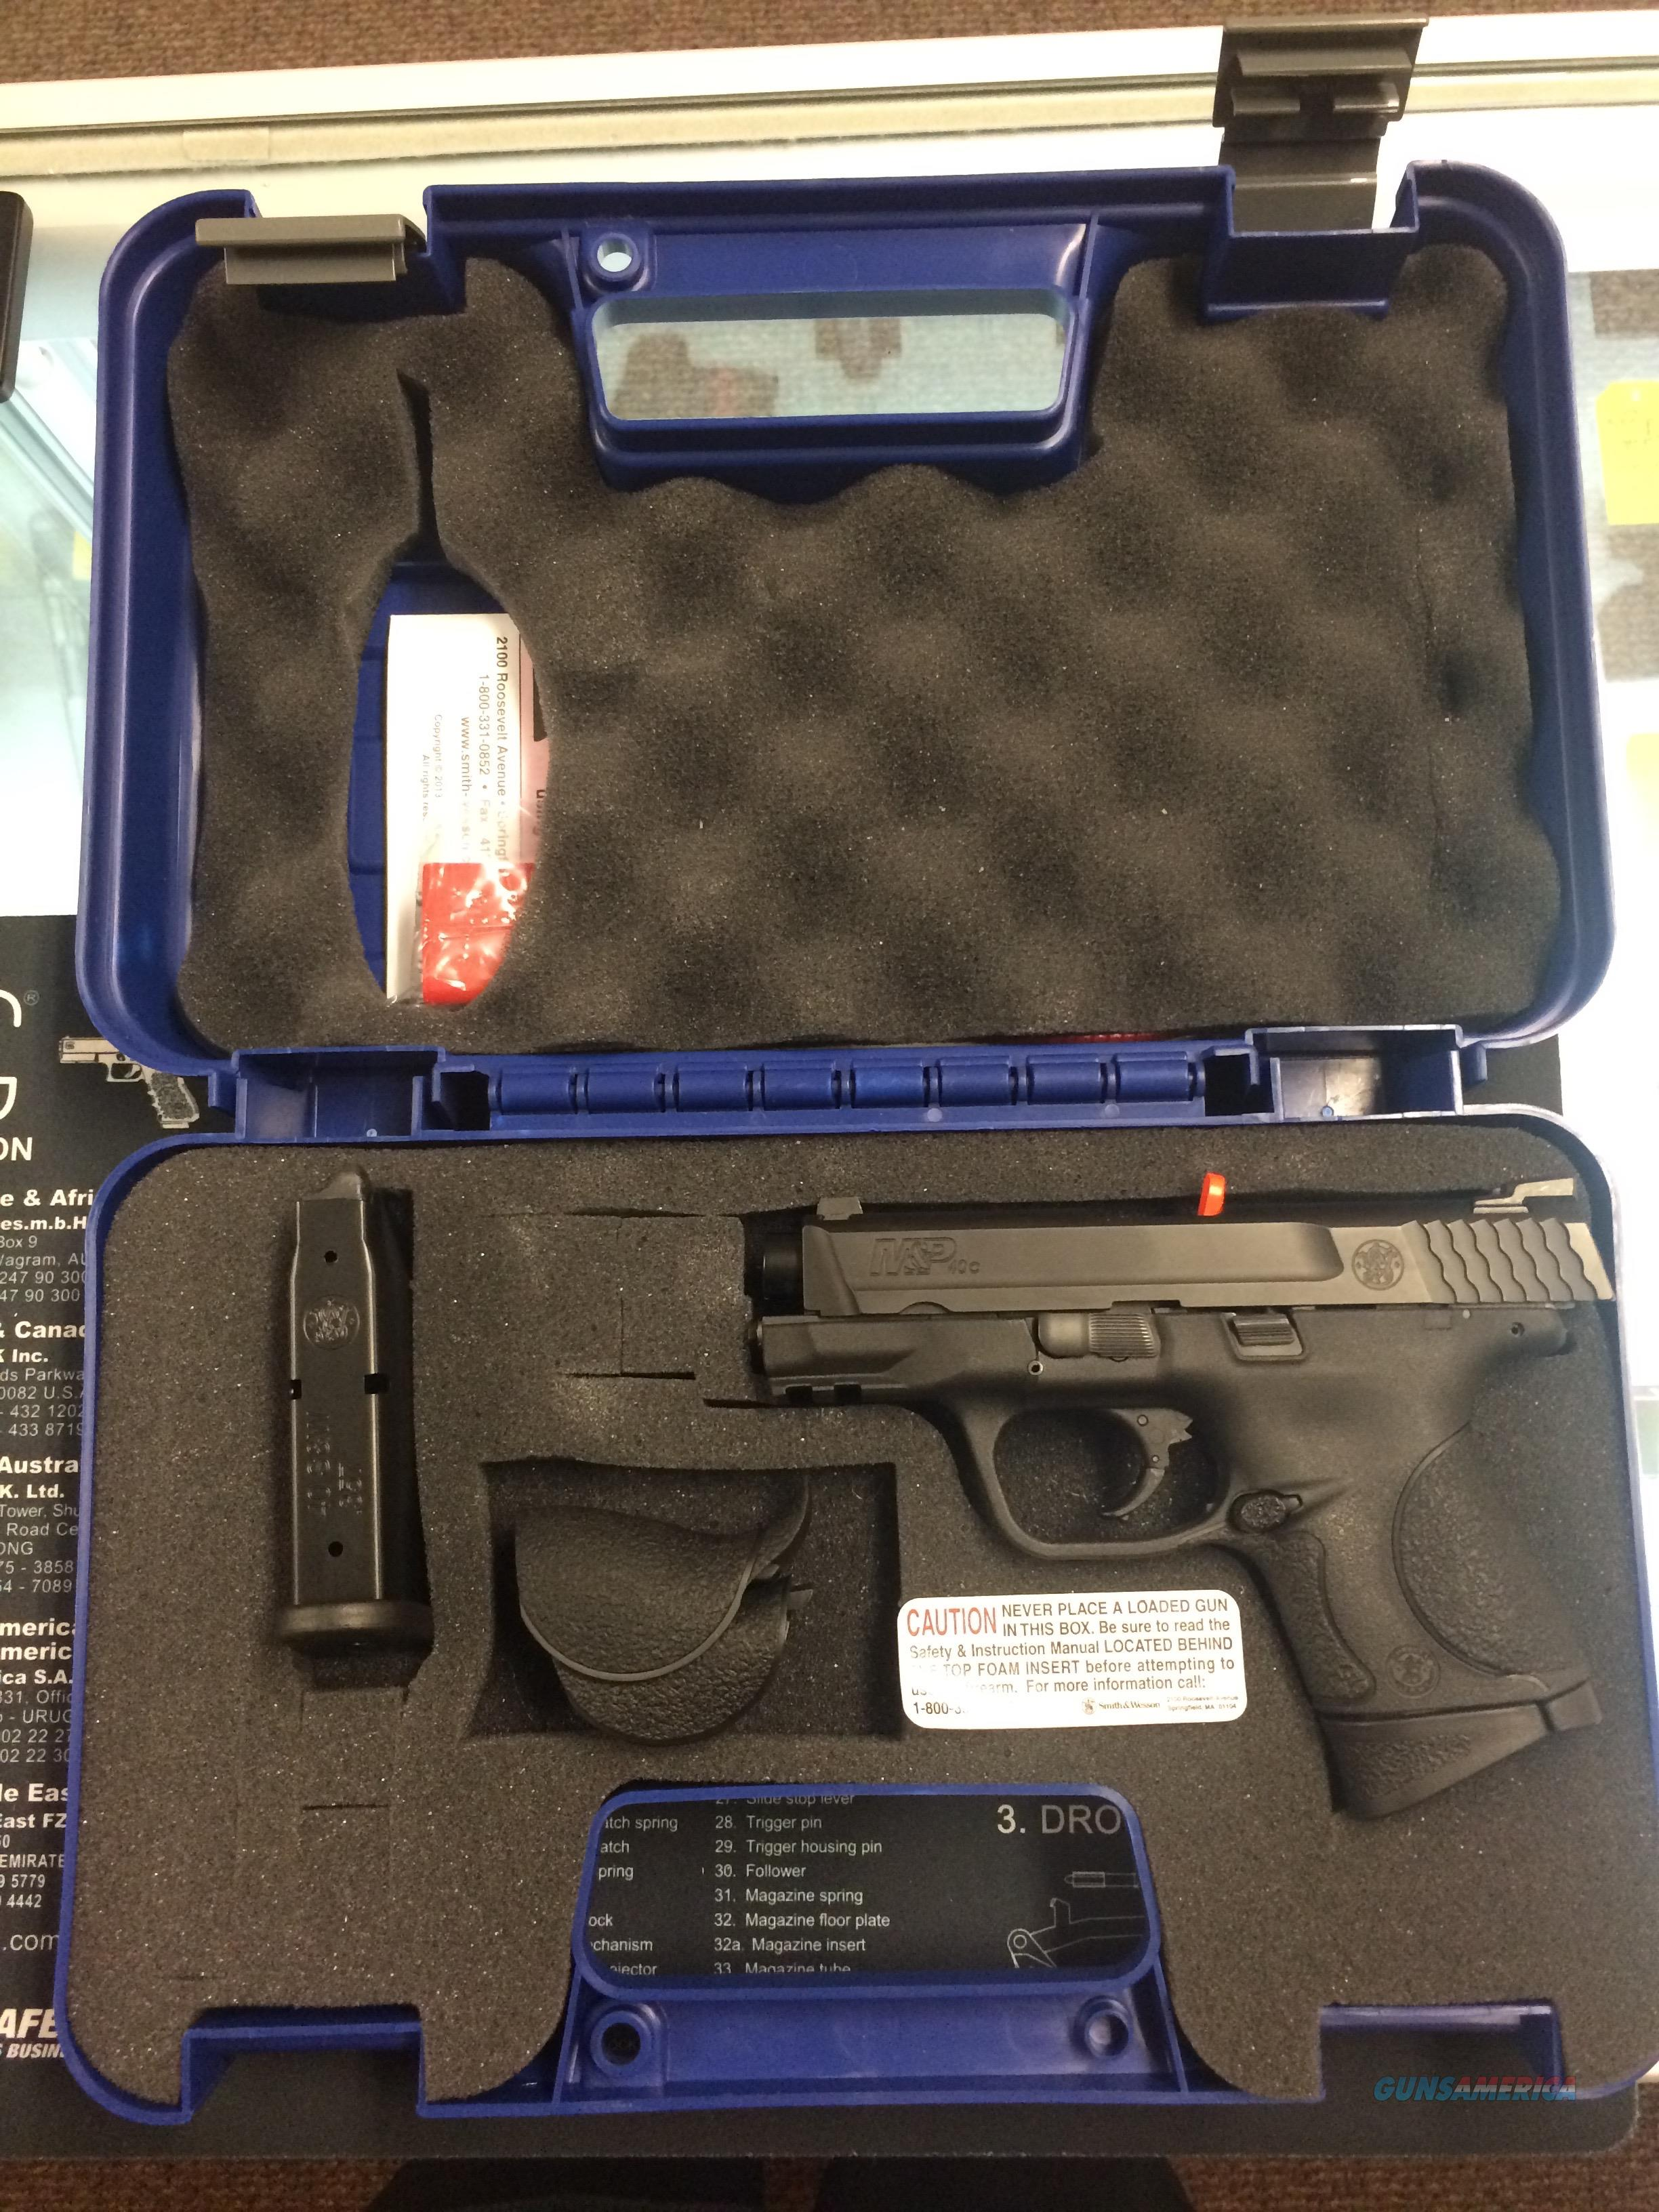 "NEW S&W 109303 M&P Compact 40S&W 3.5"" 10+1 FREE SHIP! NO FEES!  Guns > Pistols > Smith & Wesson Pistols - Autos > Polymer Frame"